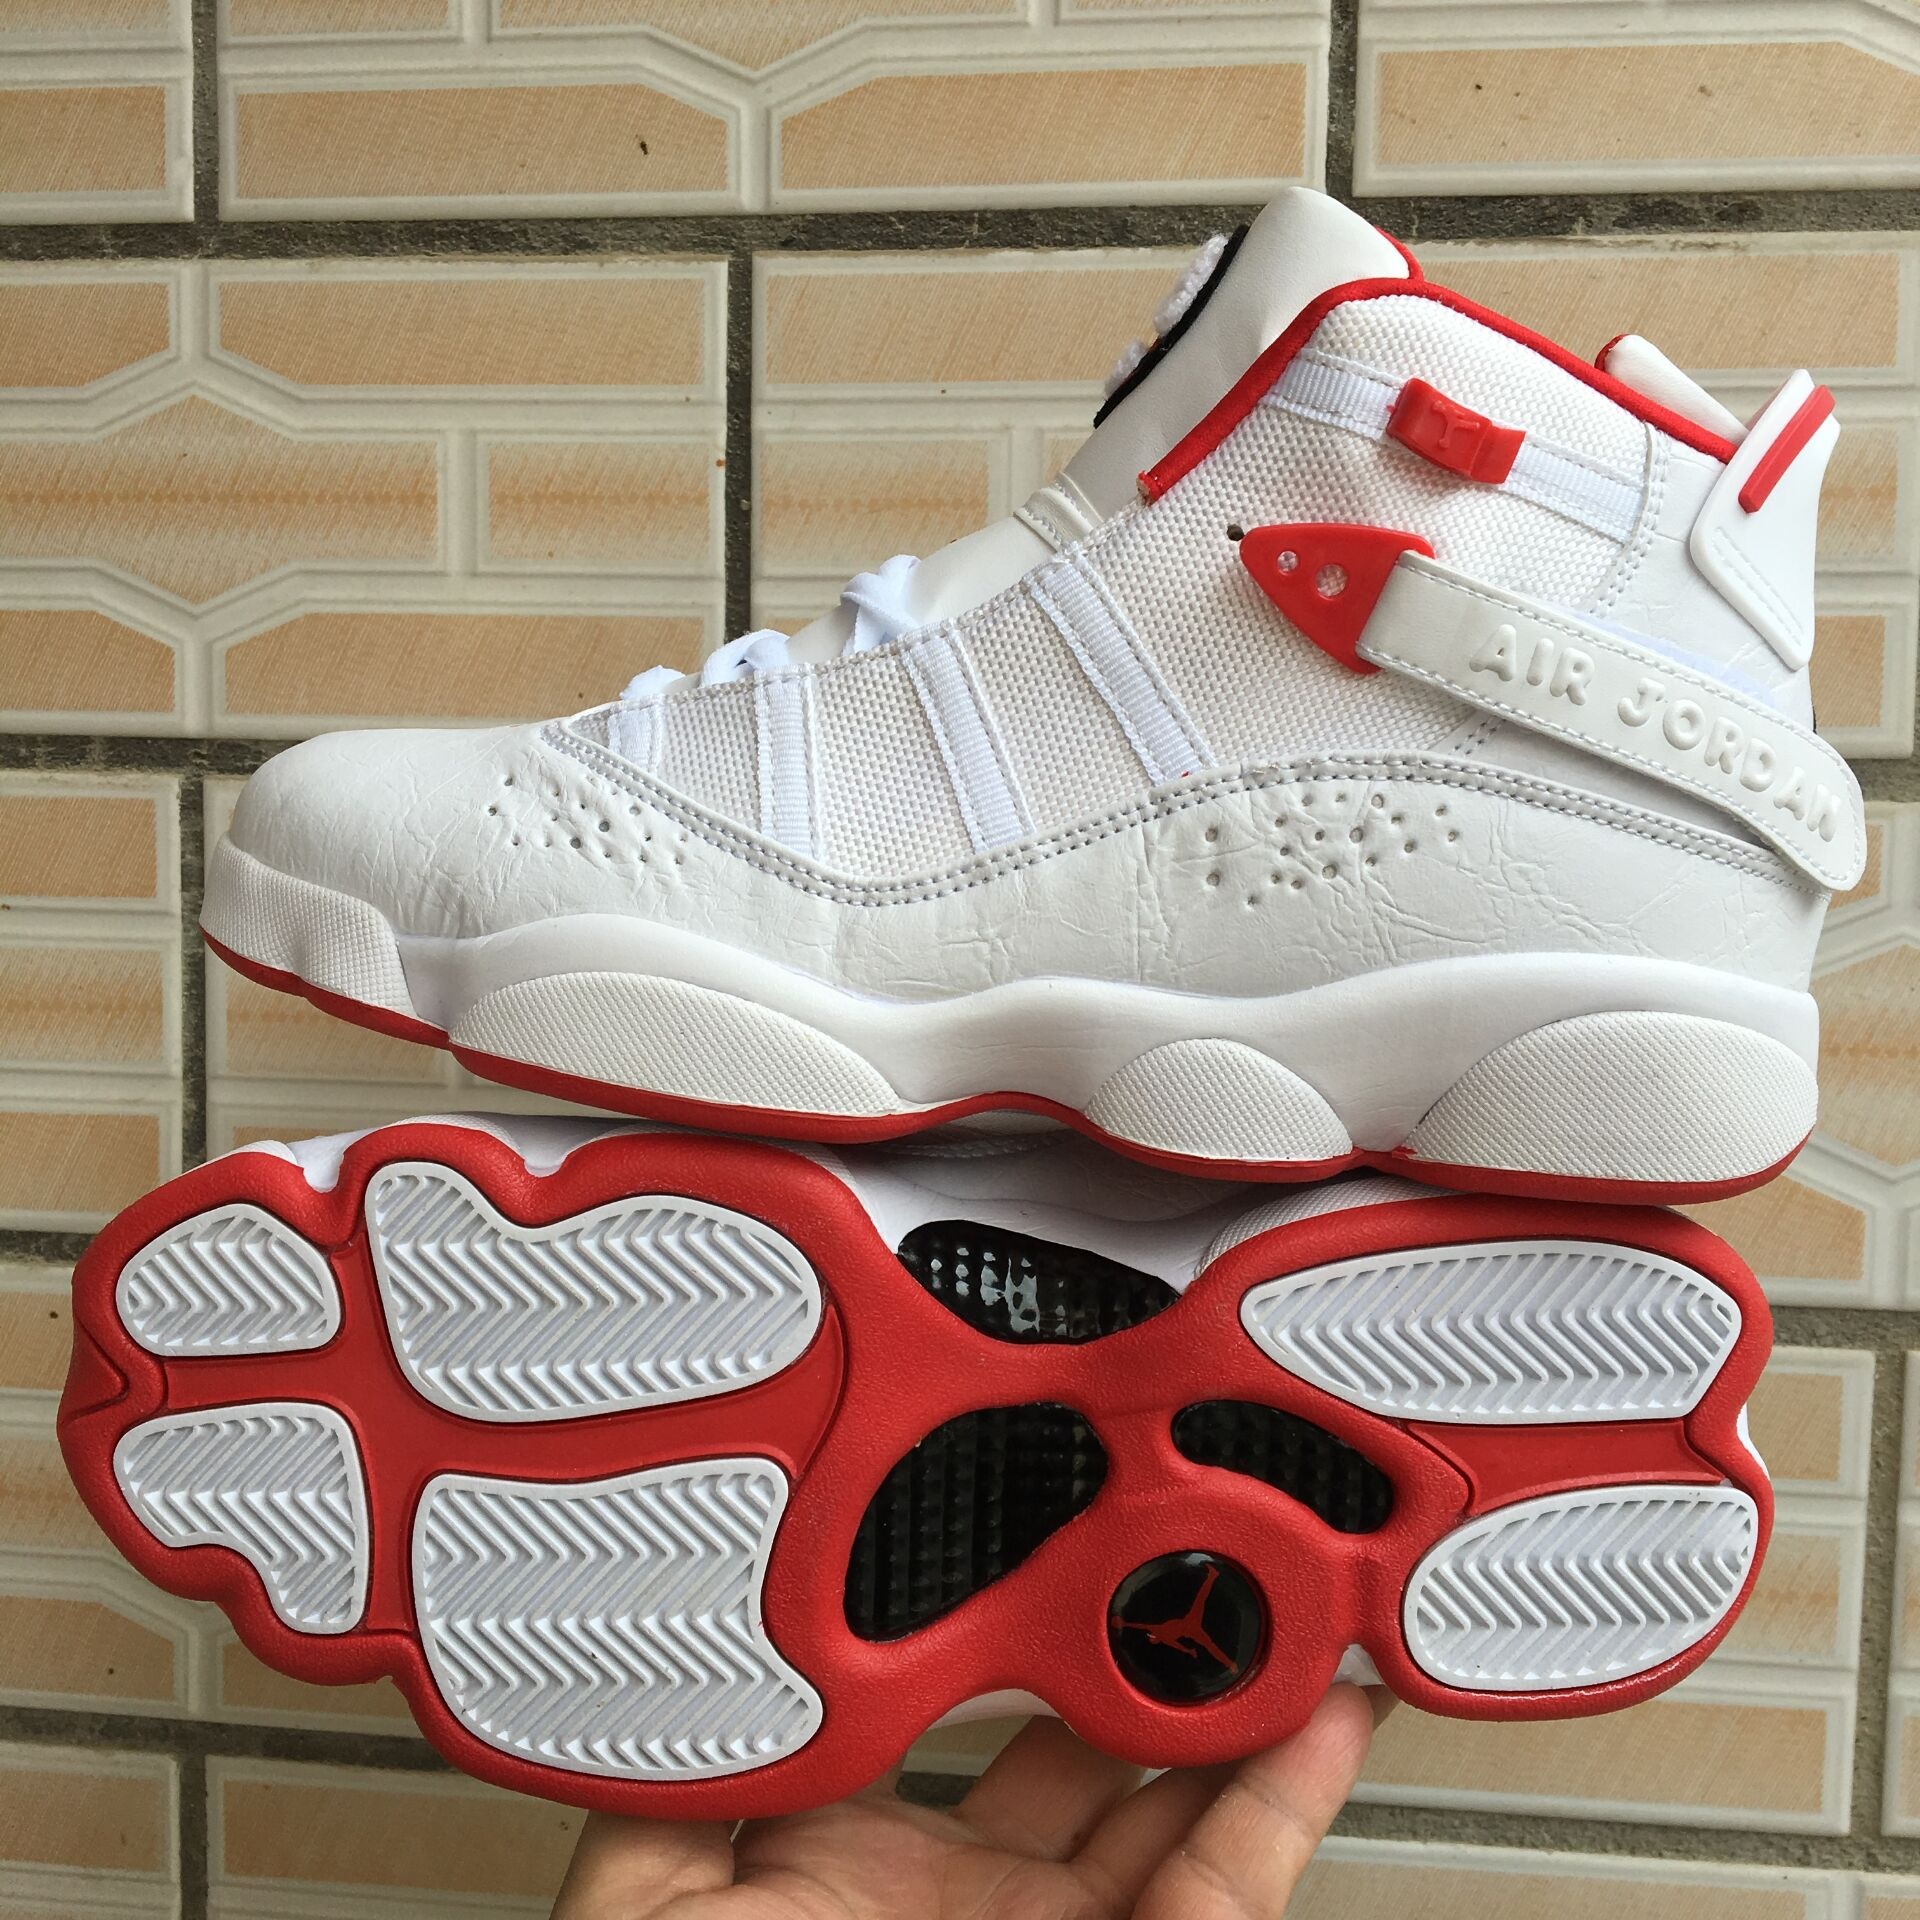 New Air Jordan Six Rings White Red Shoes